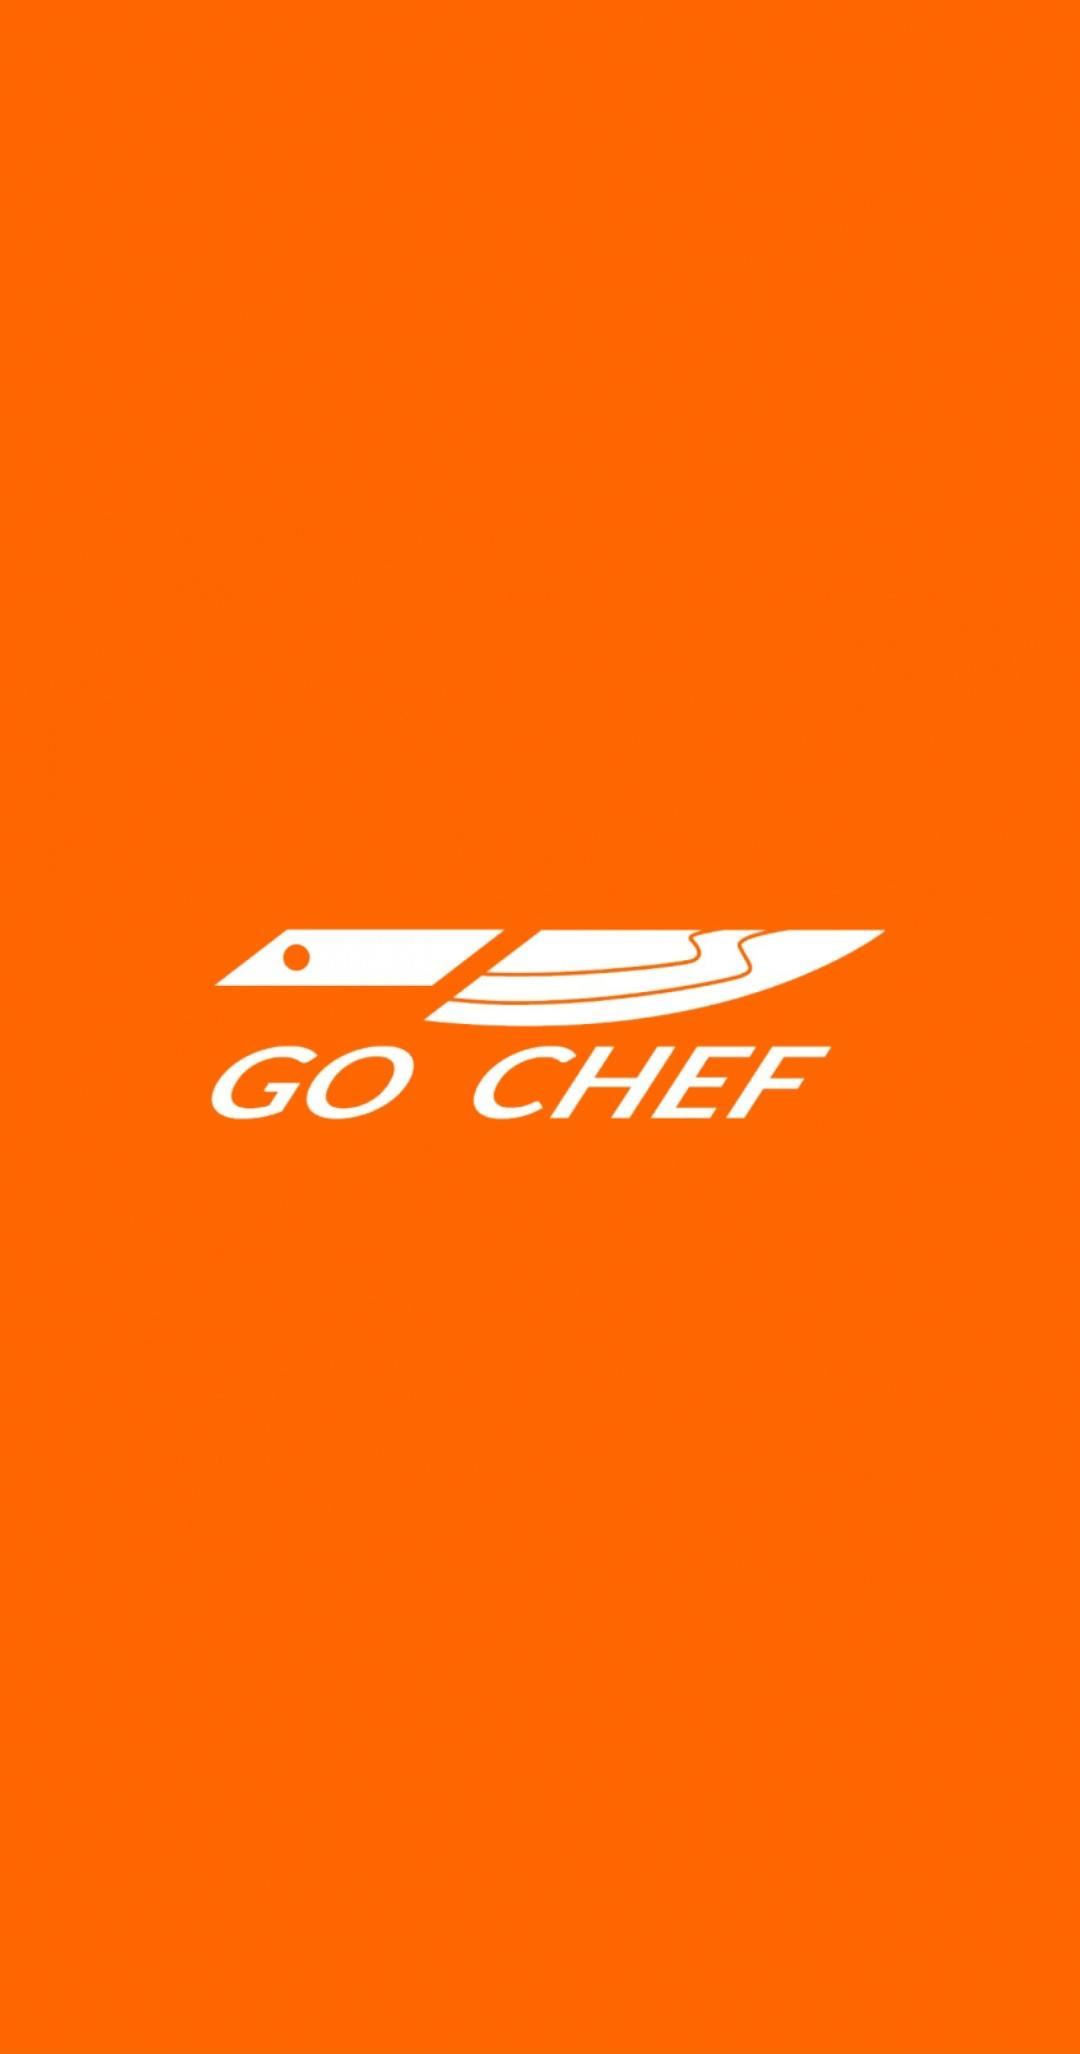 Go Chef poster